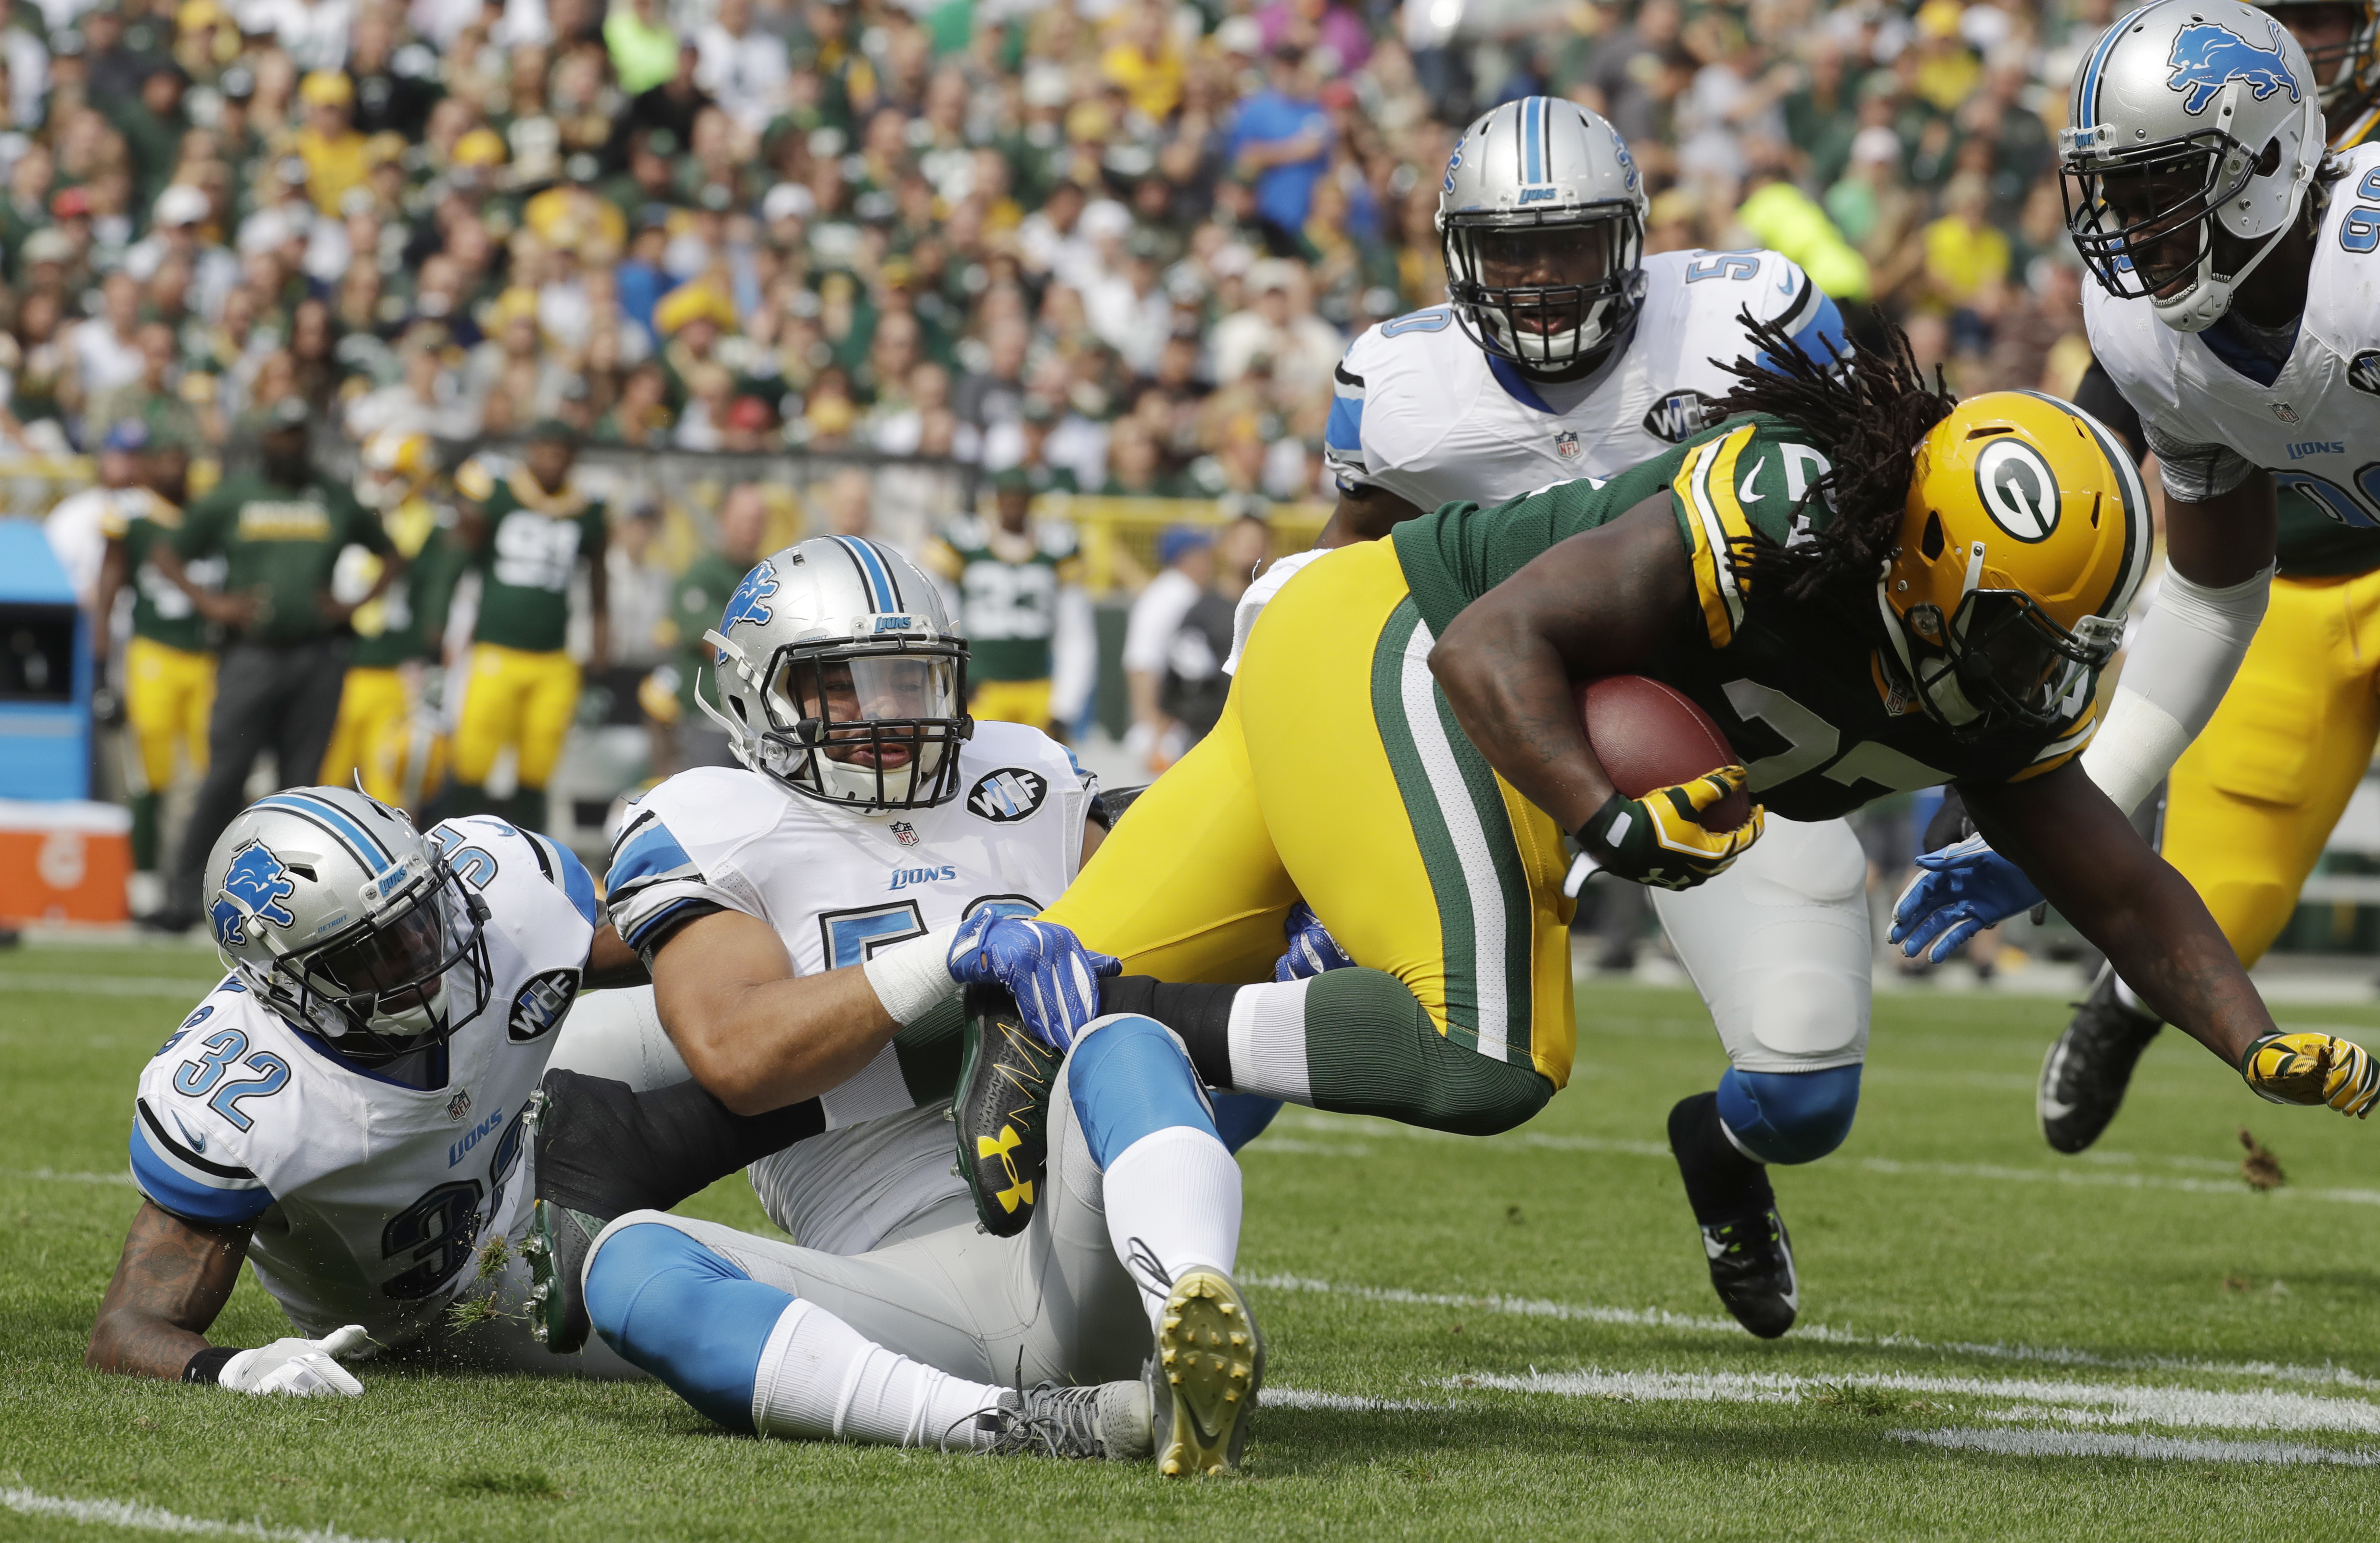 Detroit Lions' Kyle Van Noy tackles Green Bay Packers' Eddie Lacy during the first half of an NFL football game Sunday, Sept. 25, 2016, in Green Bay, Wis. (AP Photo/Morry Gash)